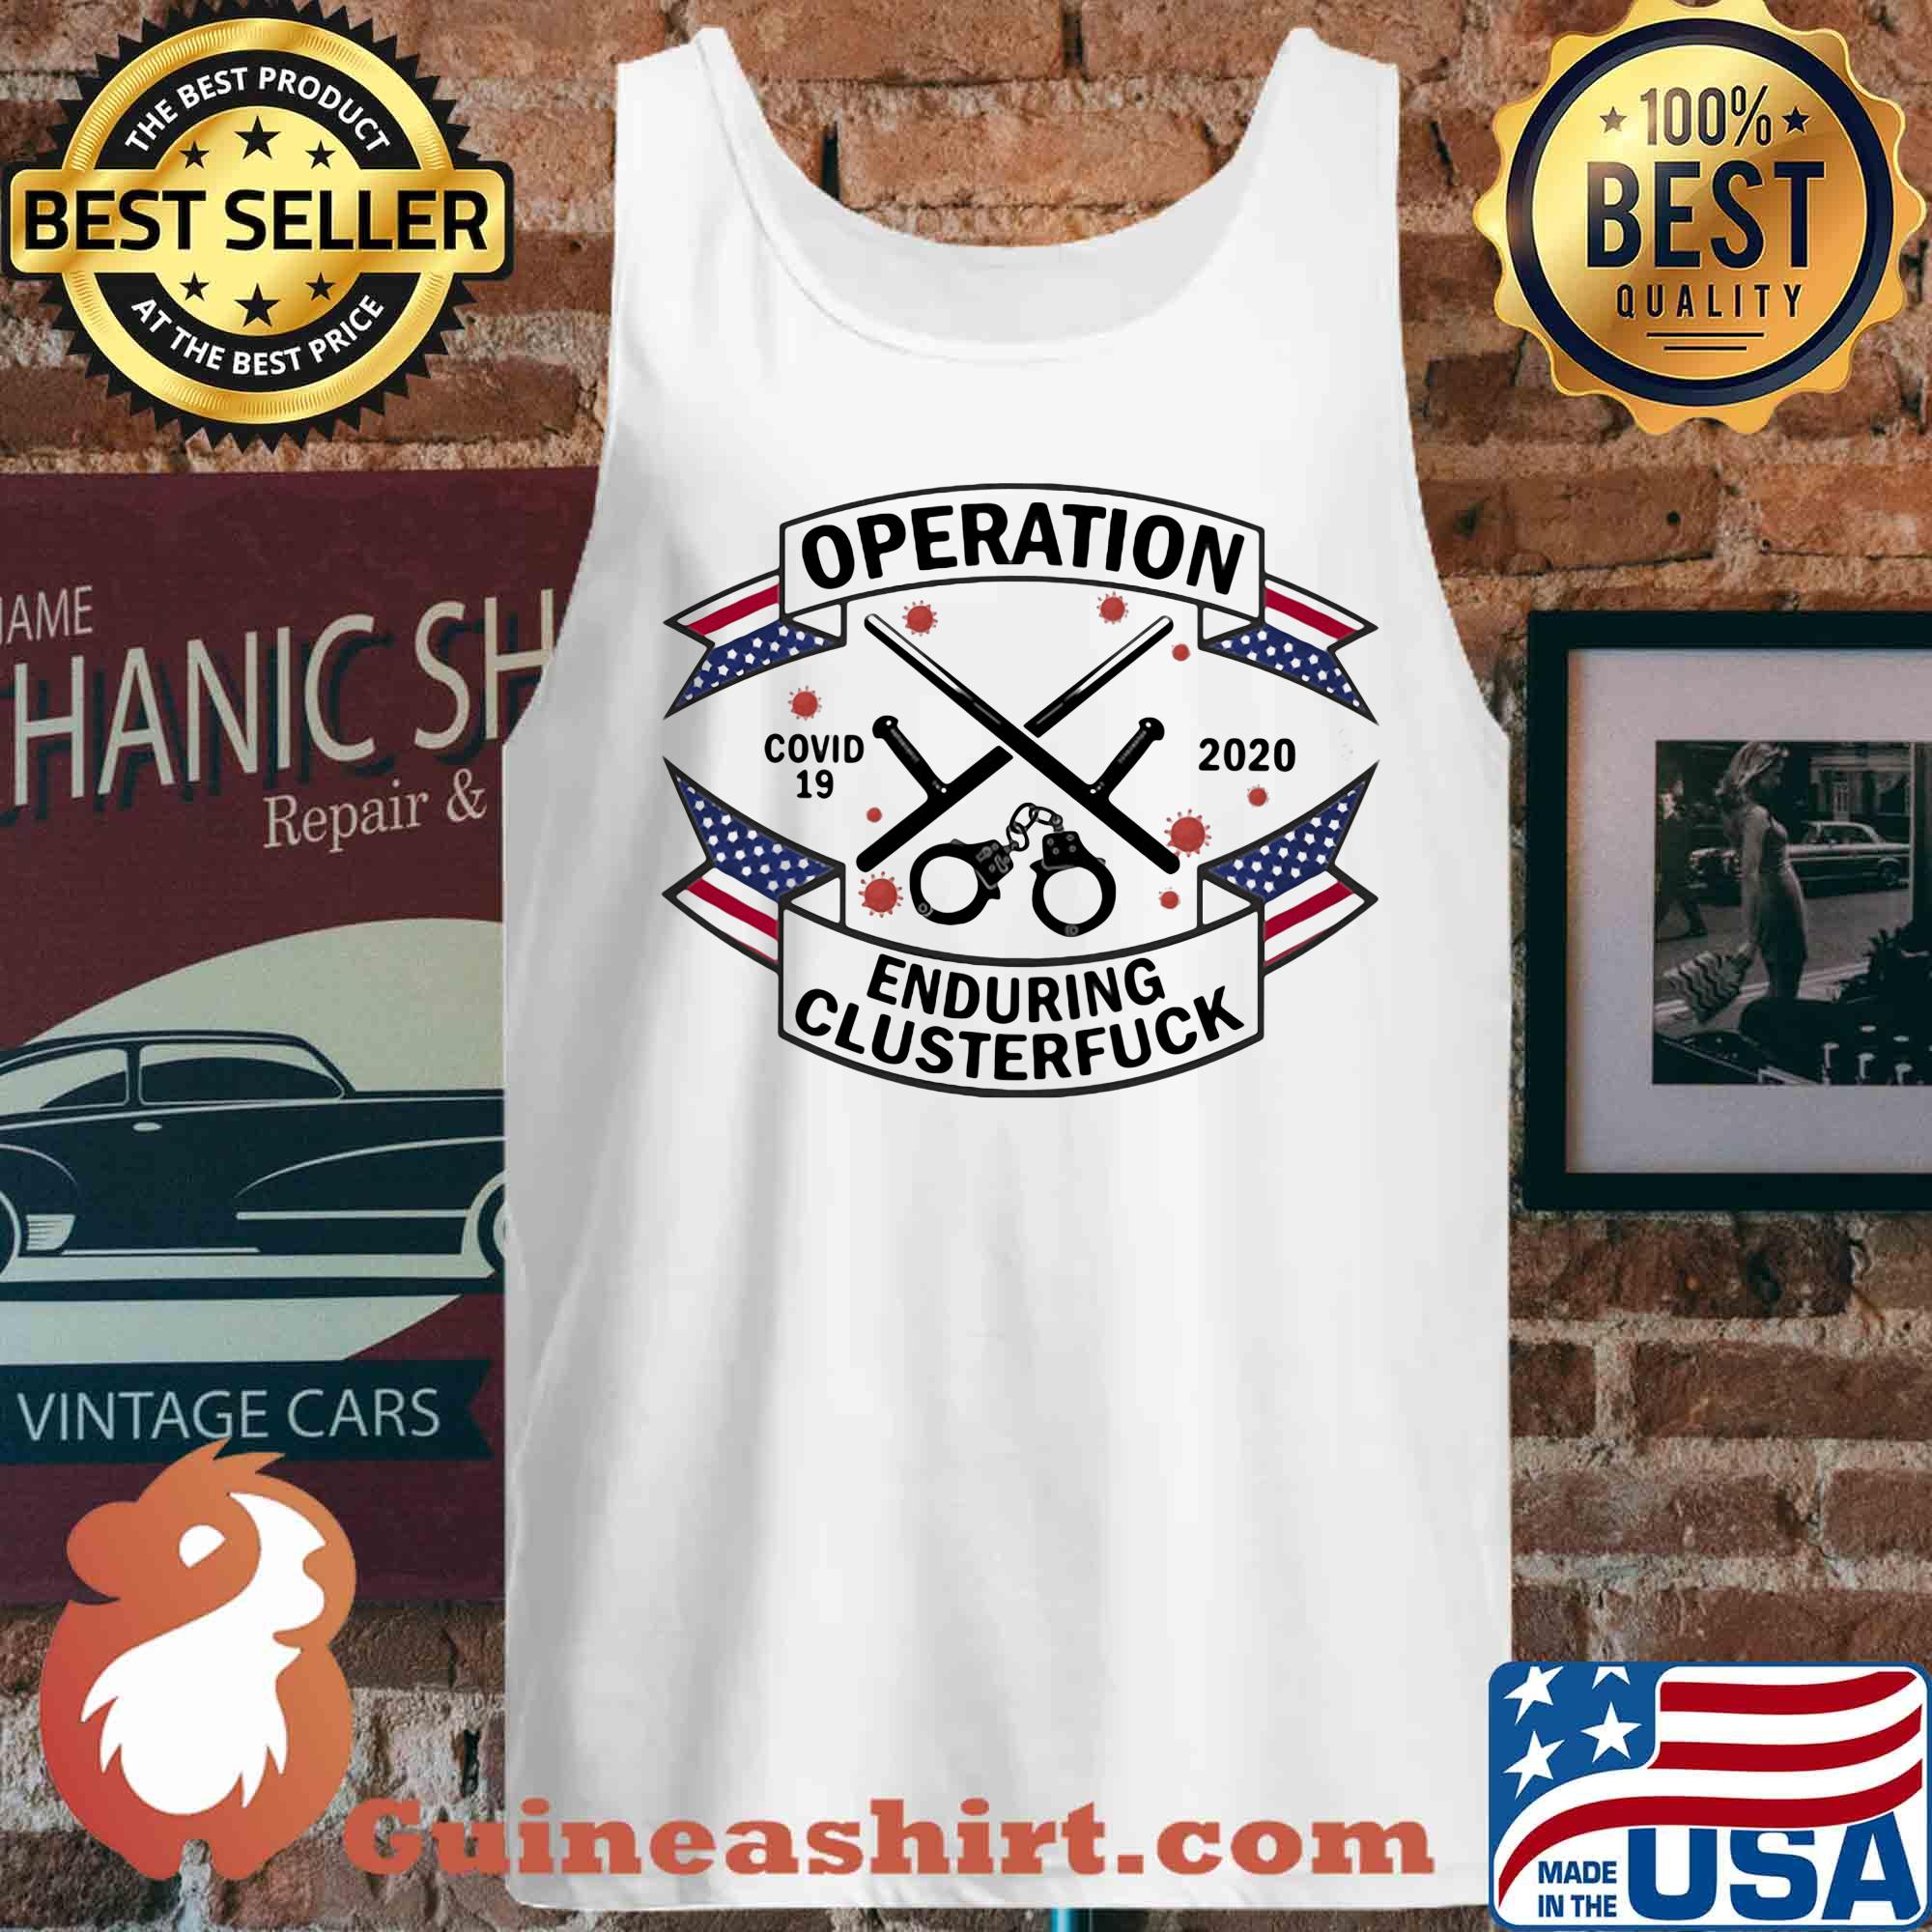 Operation covid-19 Prison Officer enduring clusterfuck 2020 s Tank top